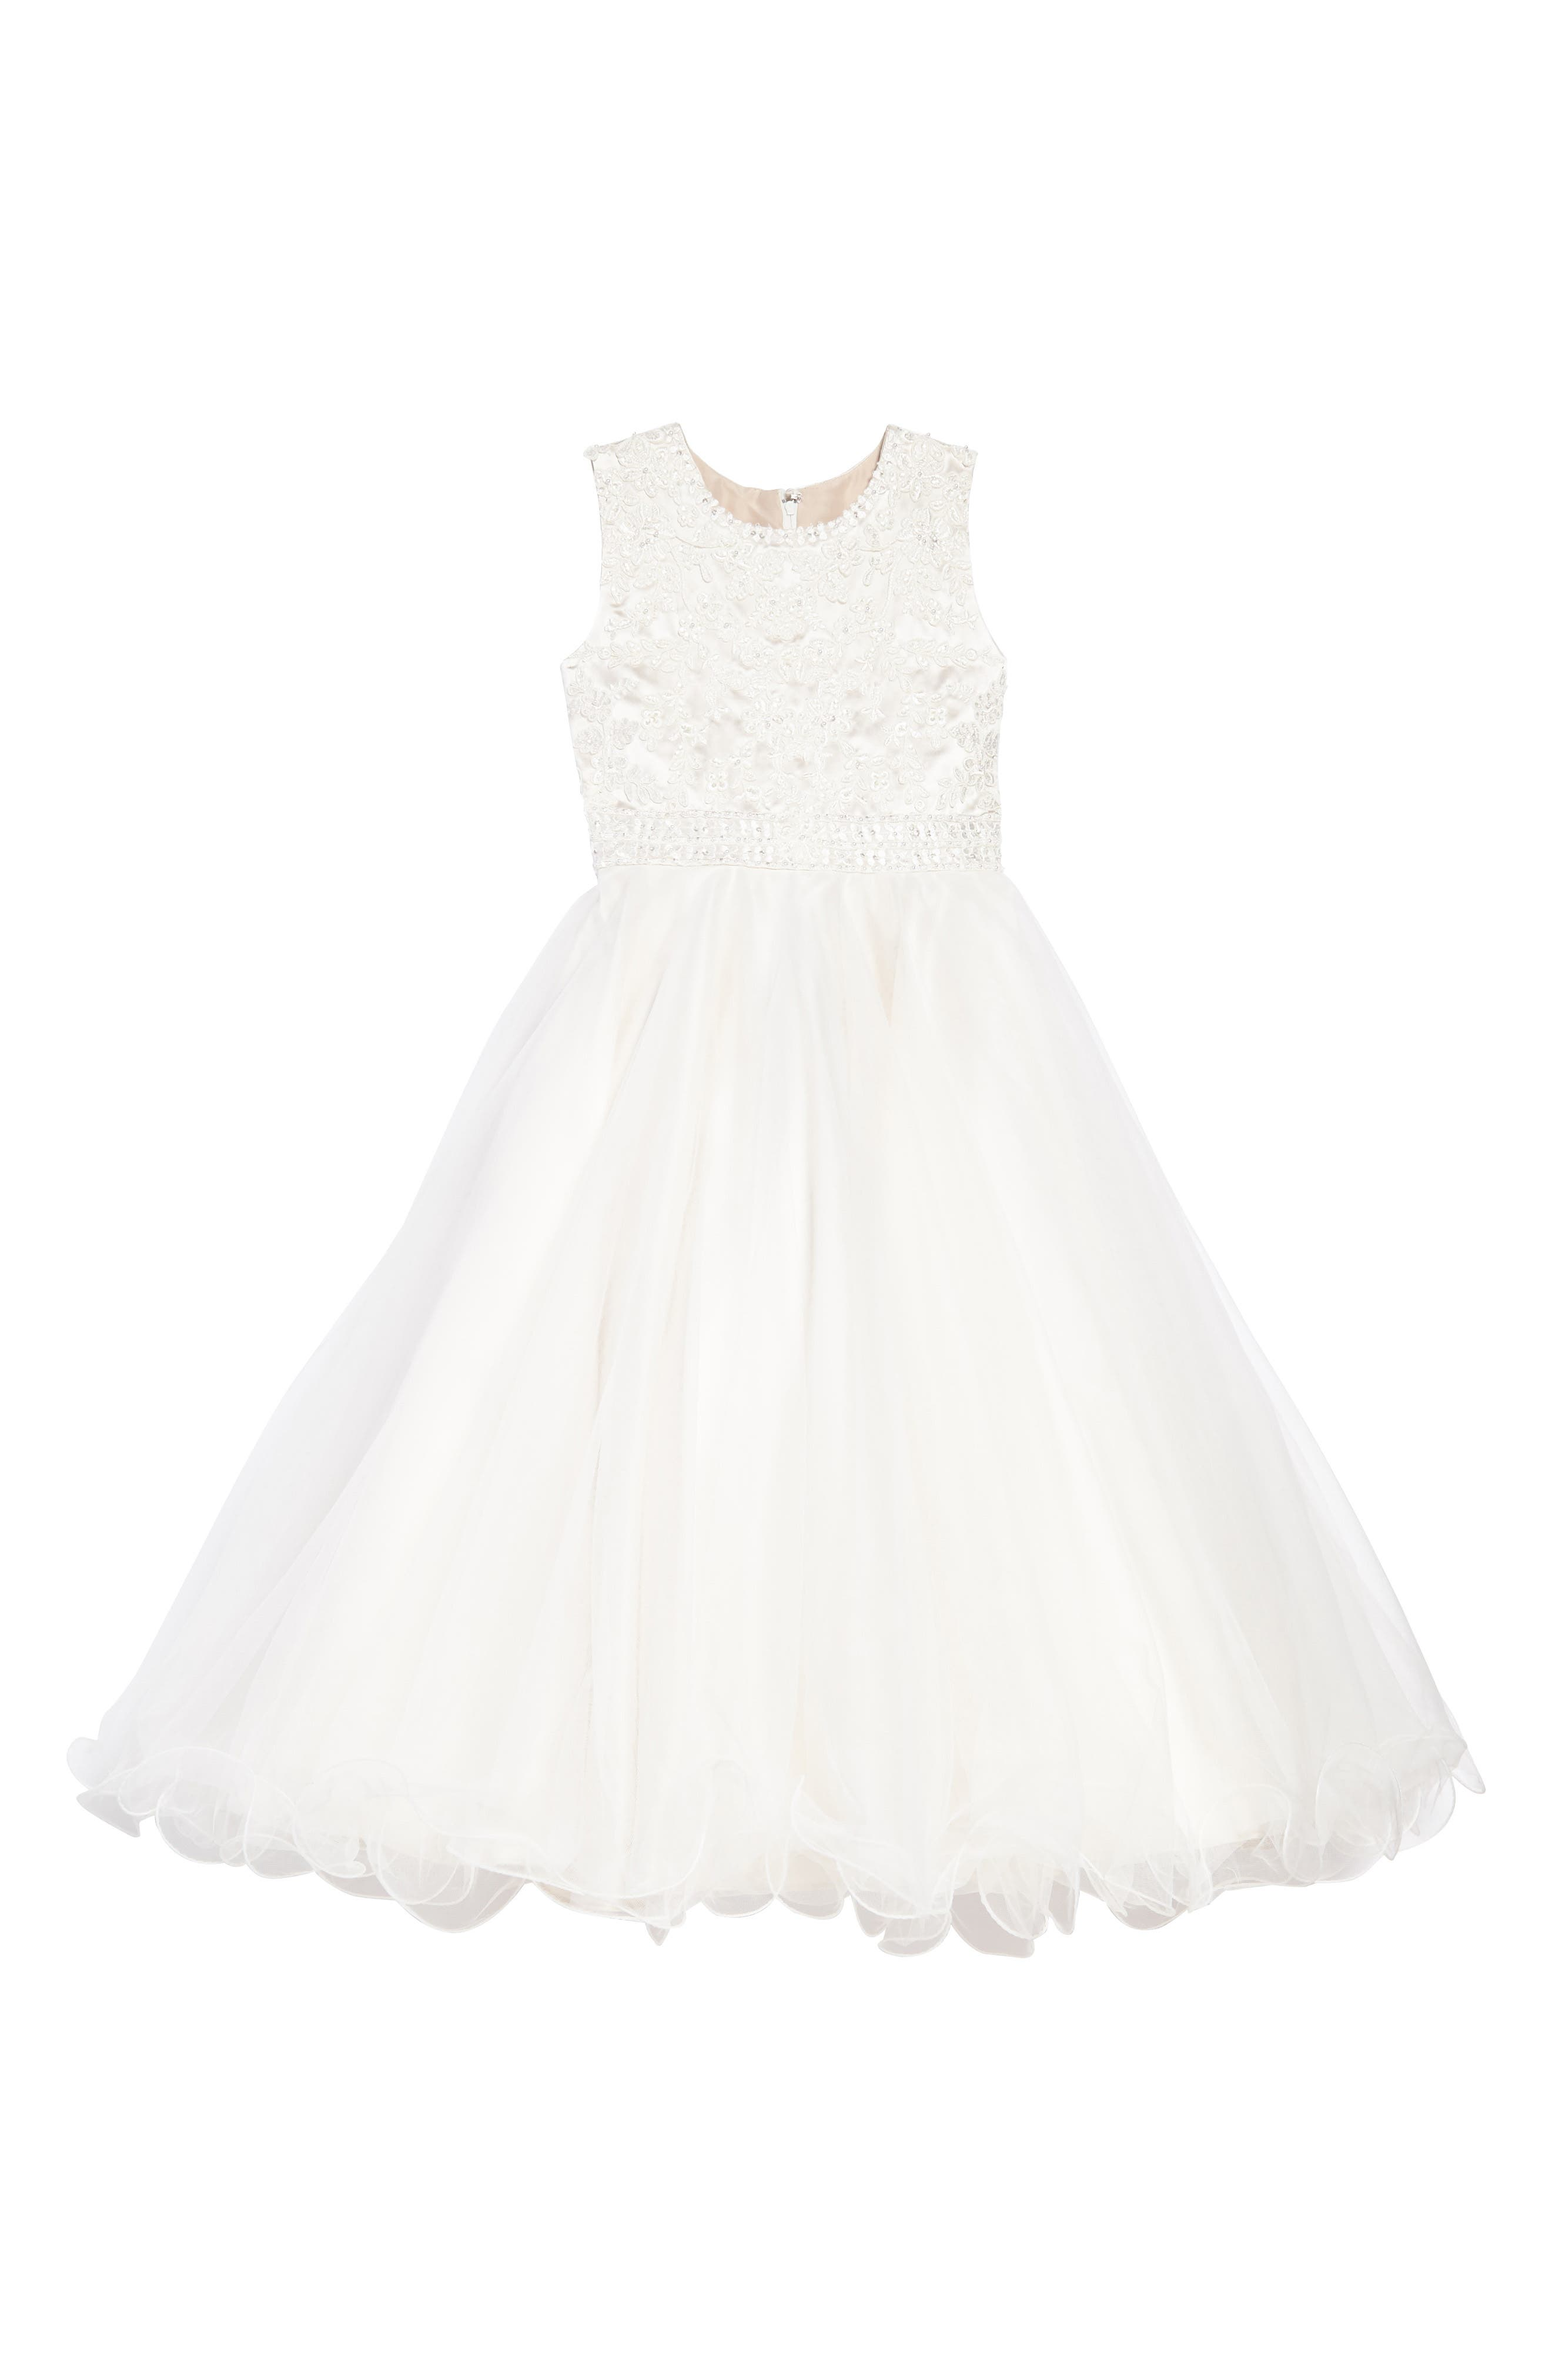 Lace & Tulle Dress,                             Main thumbnail 1, color,                             Ivory/ Gardenia